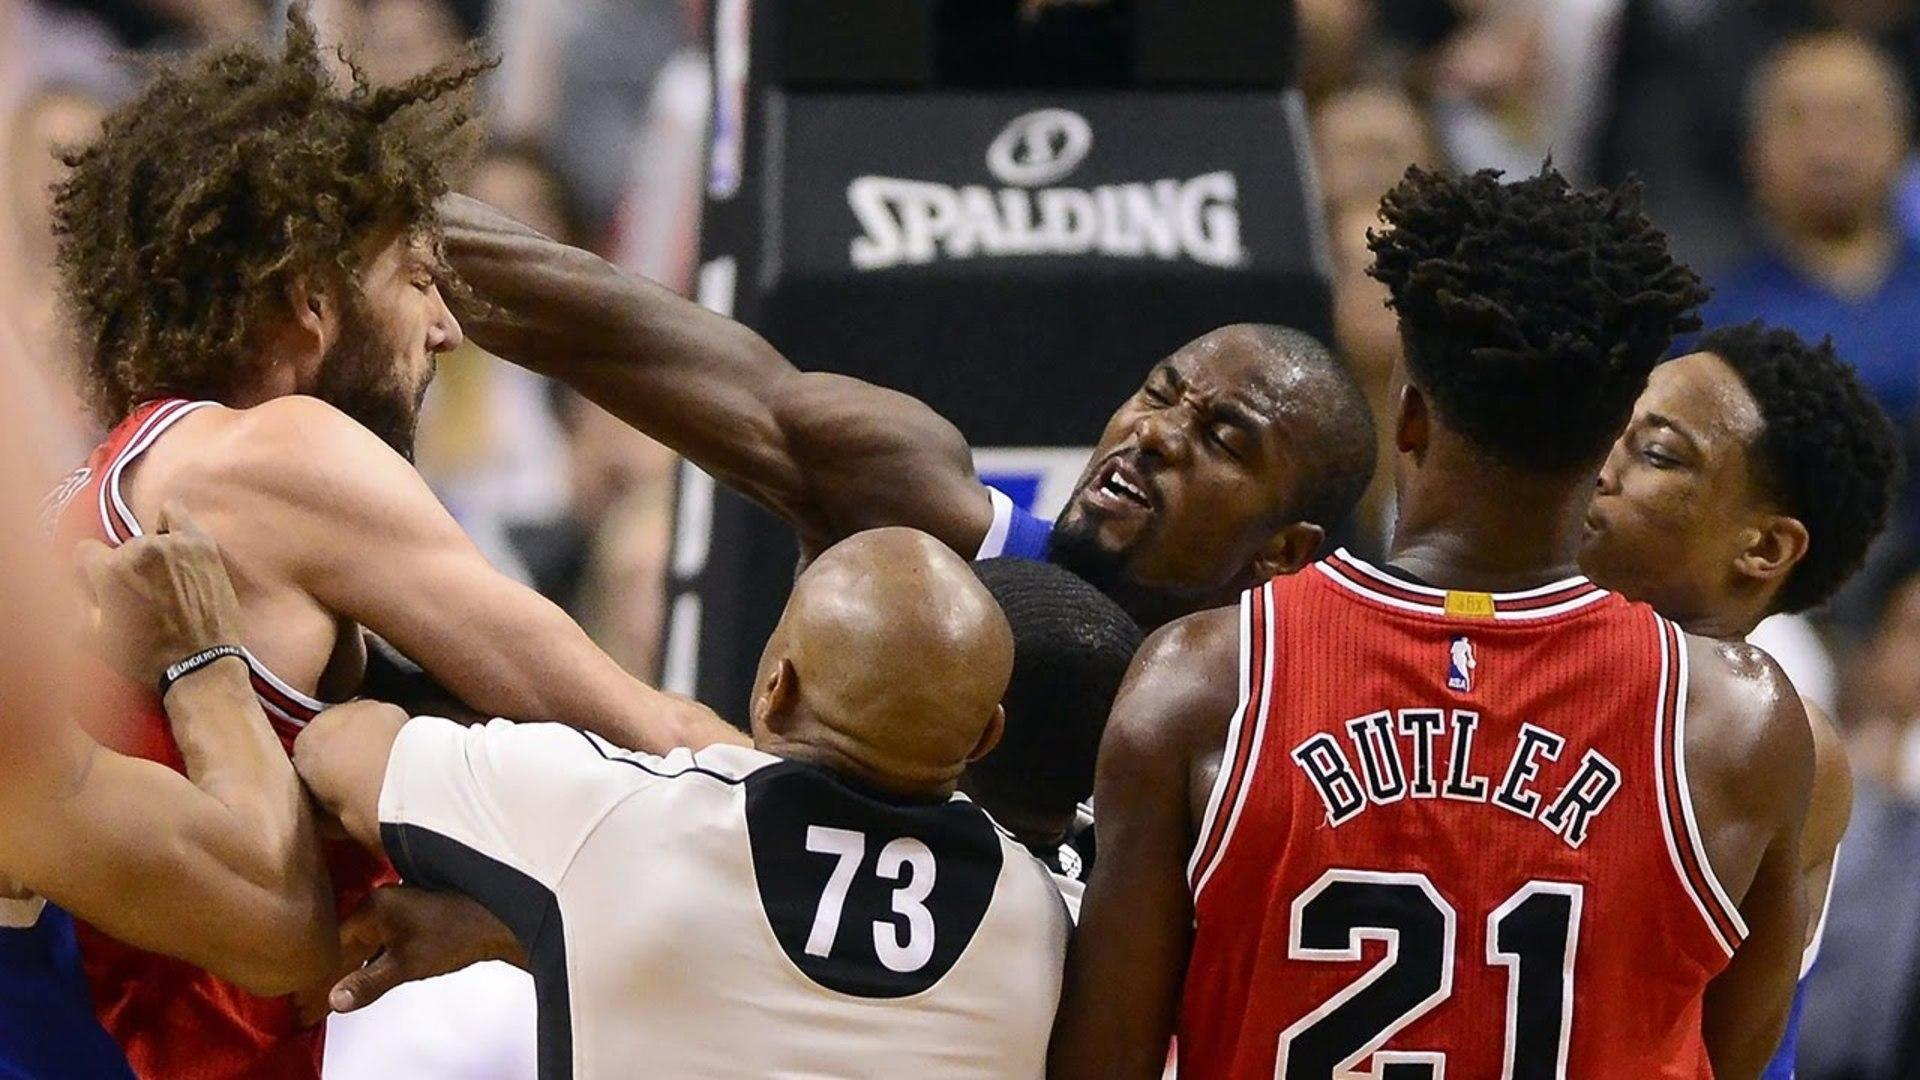 Robin Lopez and Serge Ibaka FIGHT, Punches Thrown